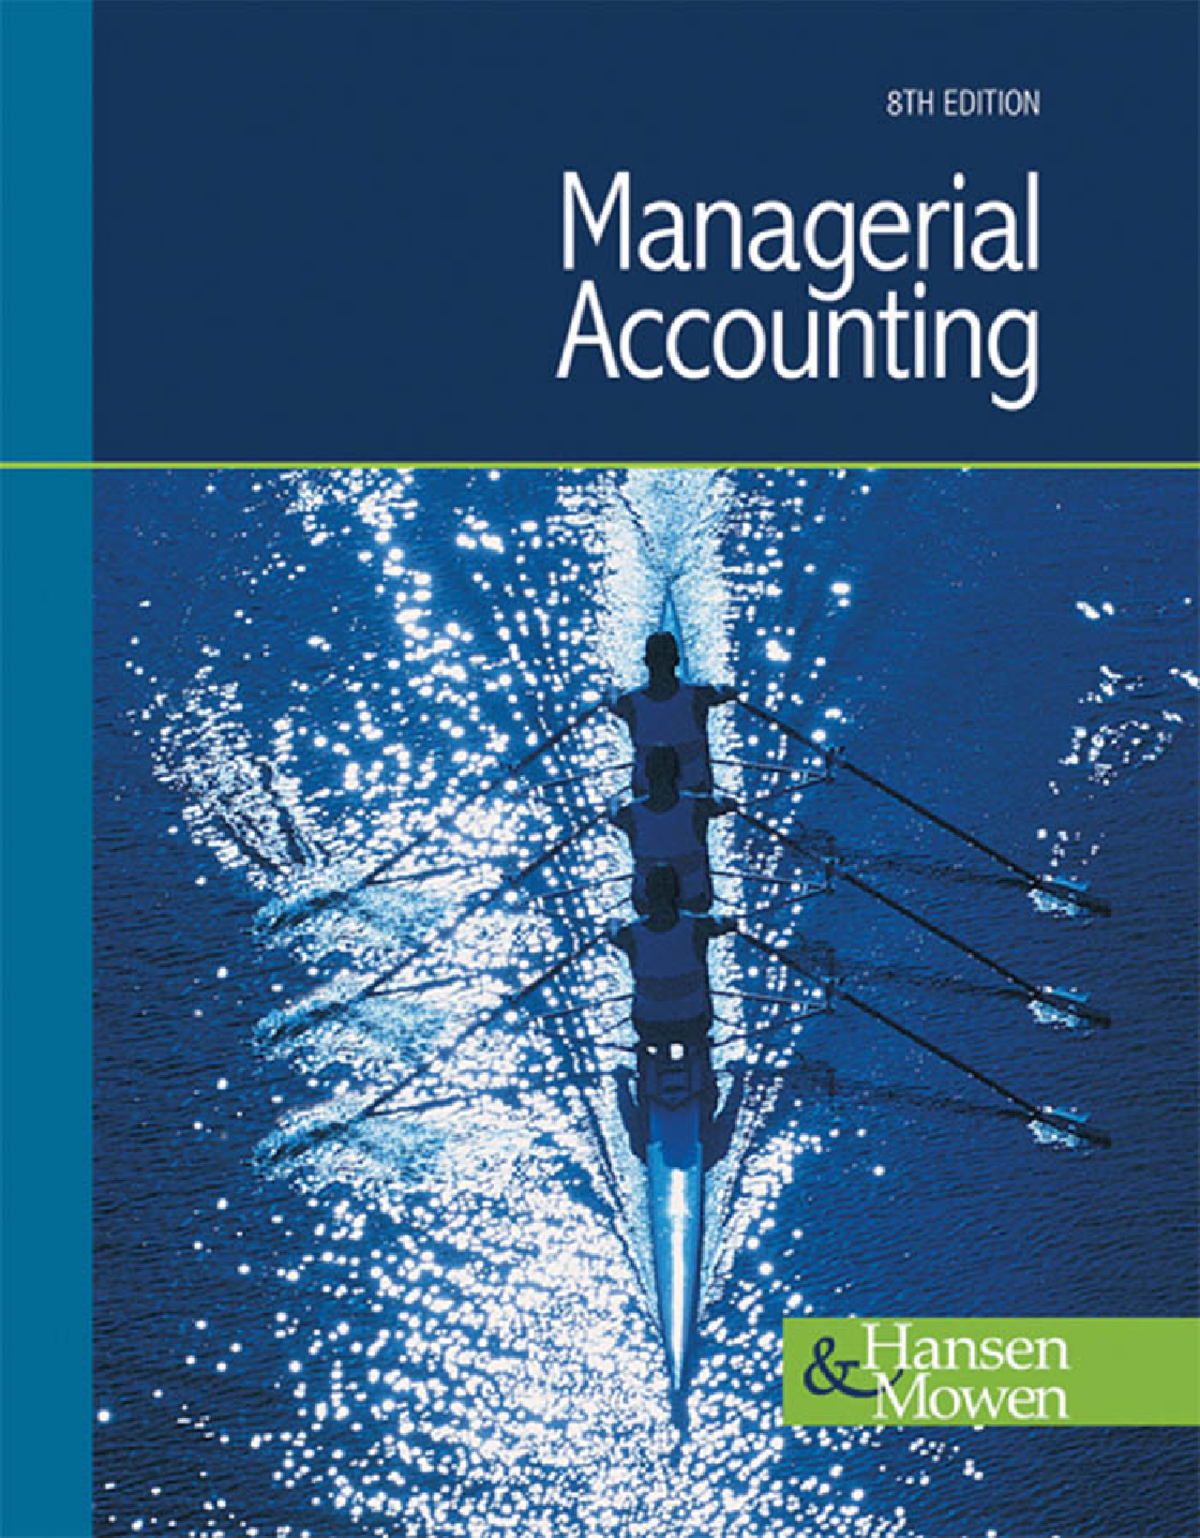 Solution manual management accounting - StuDocu